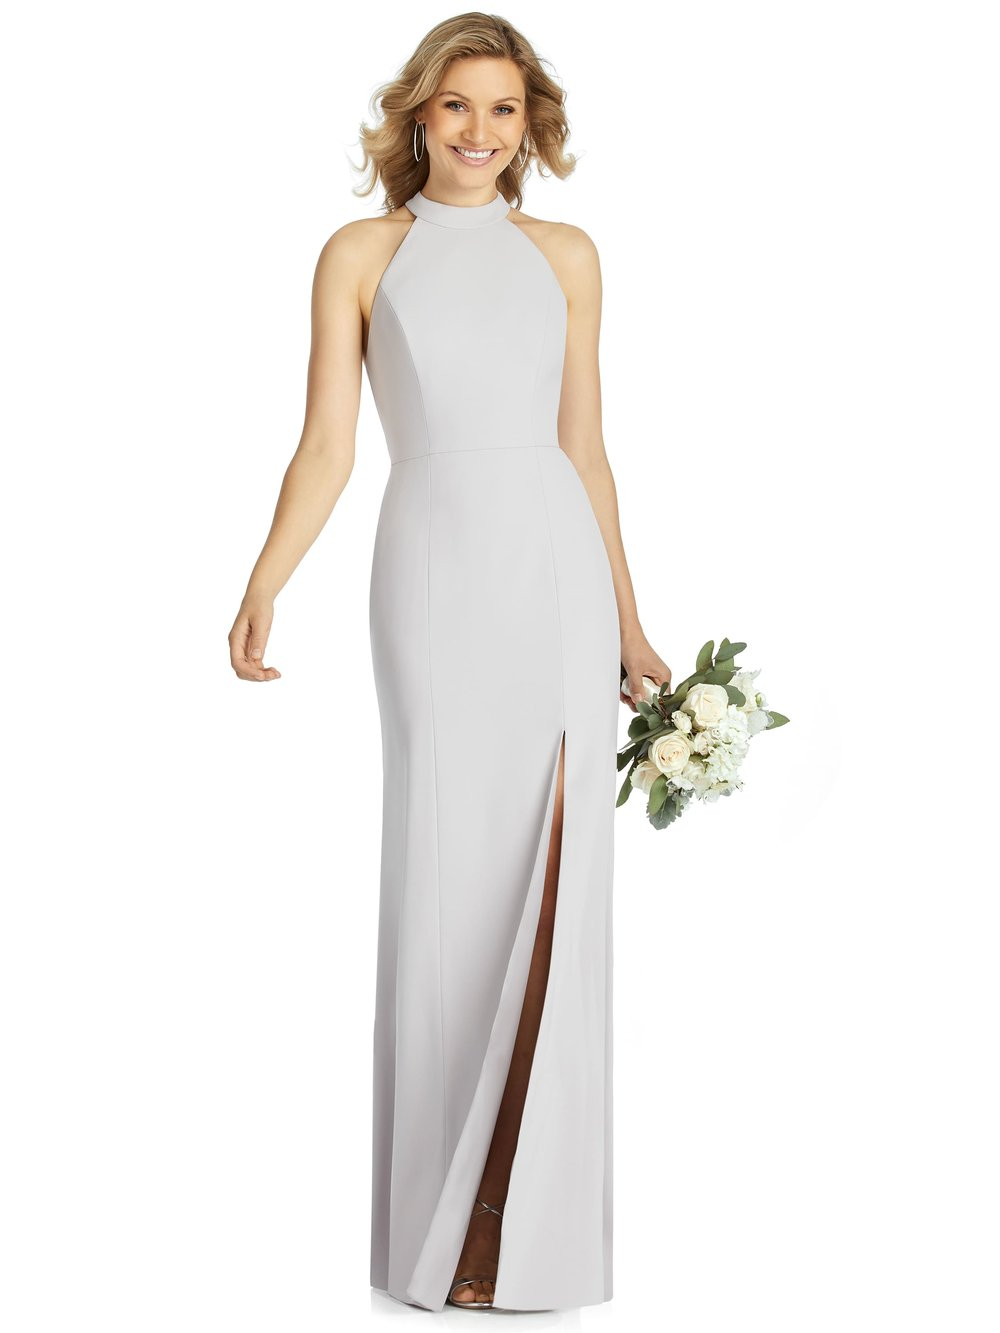 Meghan Markle inspired crepe dress by Dessy After Six style 6808